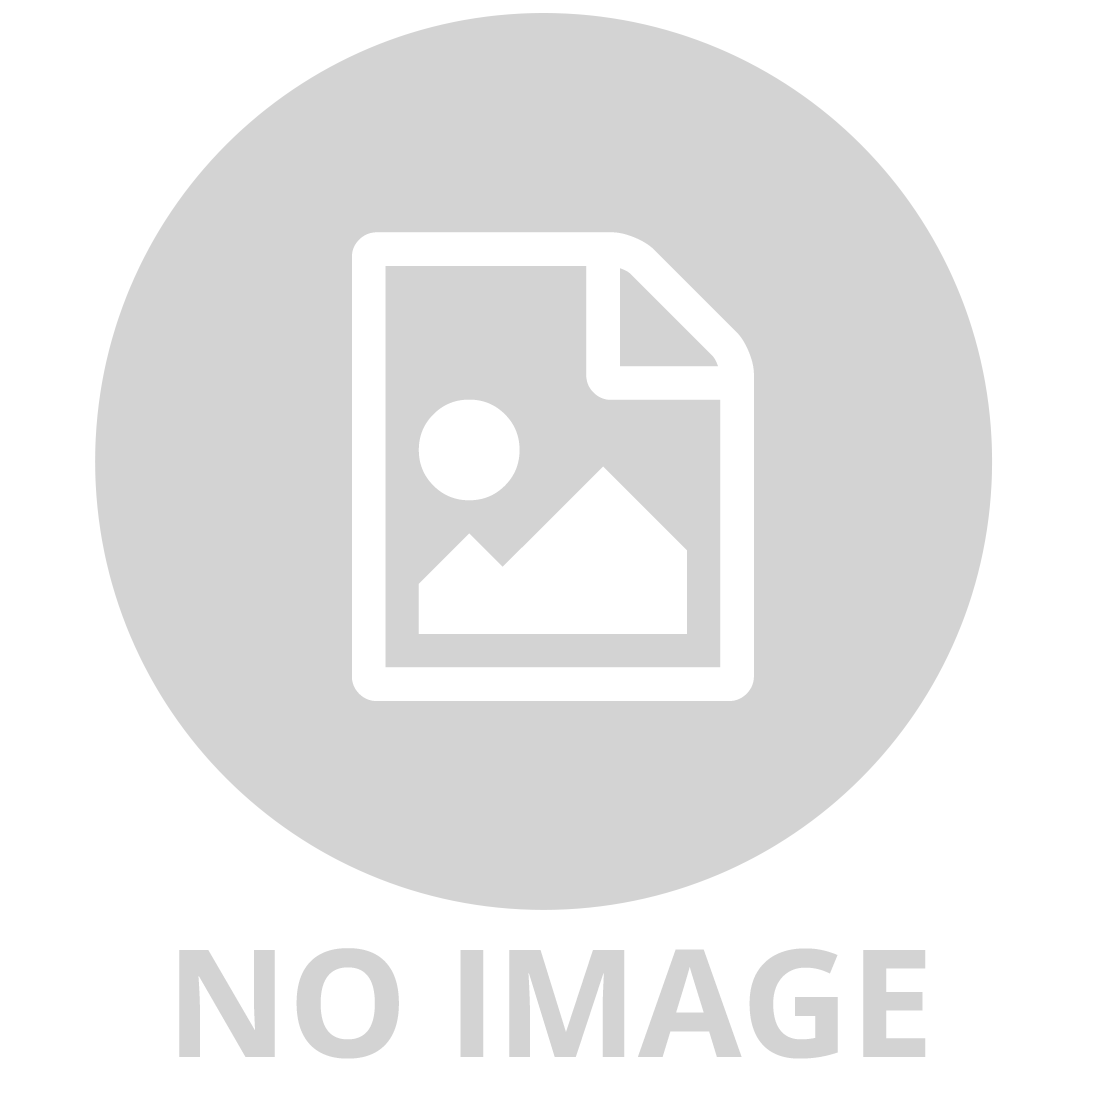 Otway Miami Natural 9S055 8S281 Table Lamp